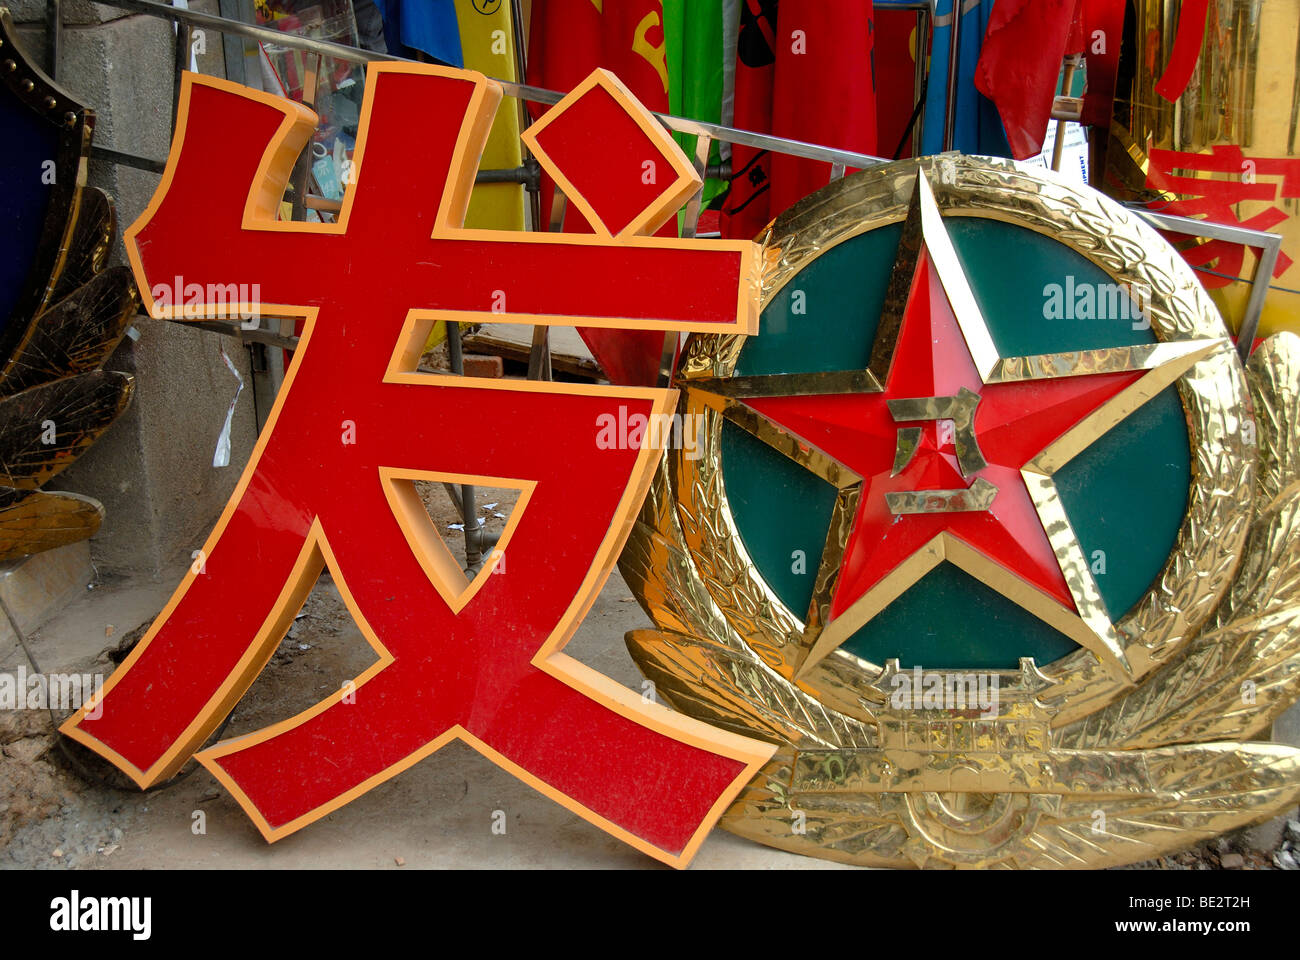 China's symbols, characters, communism, red star, Kunming, Yunnan Province, People's Republic of China, - Stock Image